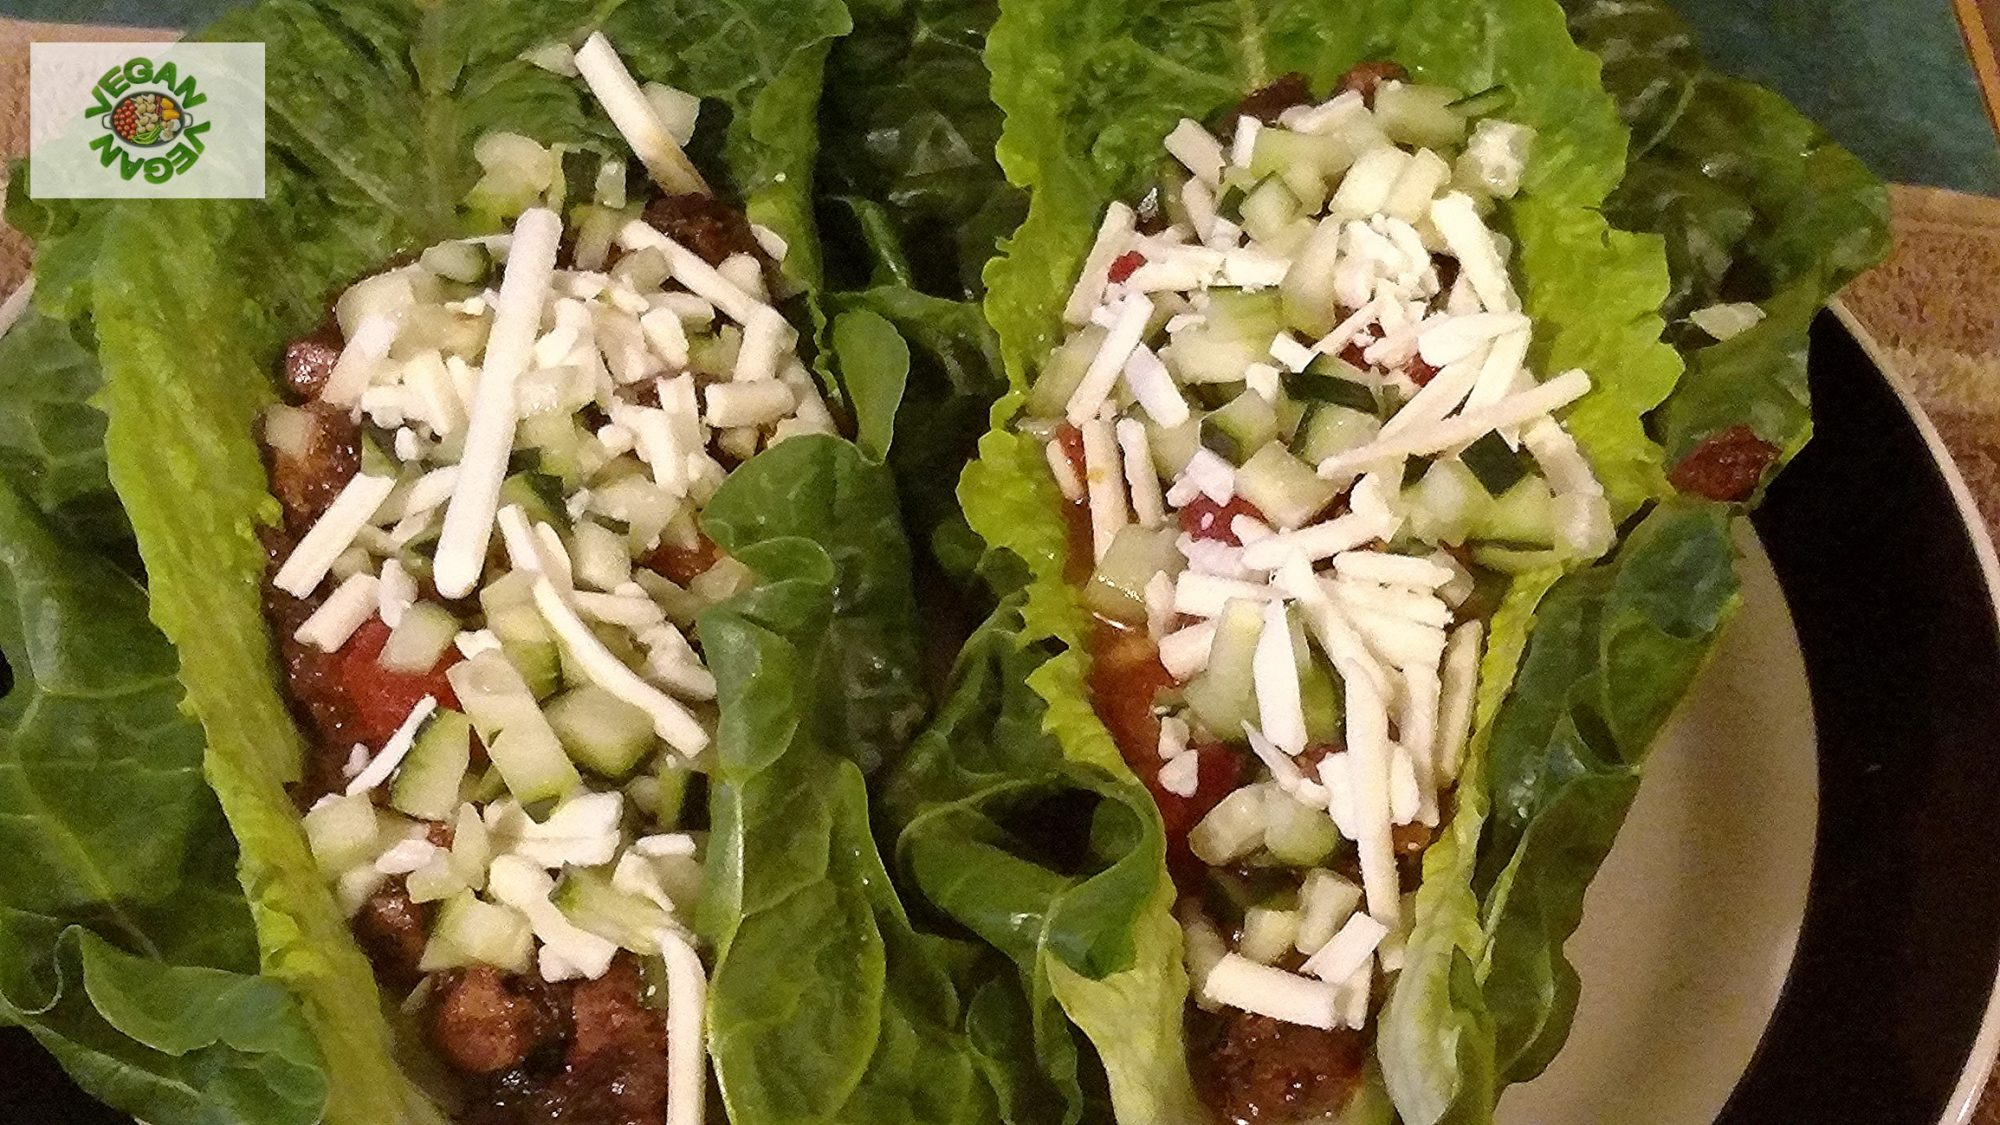 Vegan tacos recipe in lettuce wraps feature photo. 100% vegan. 100% healthy. 100% delicious.